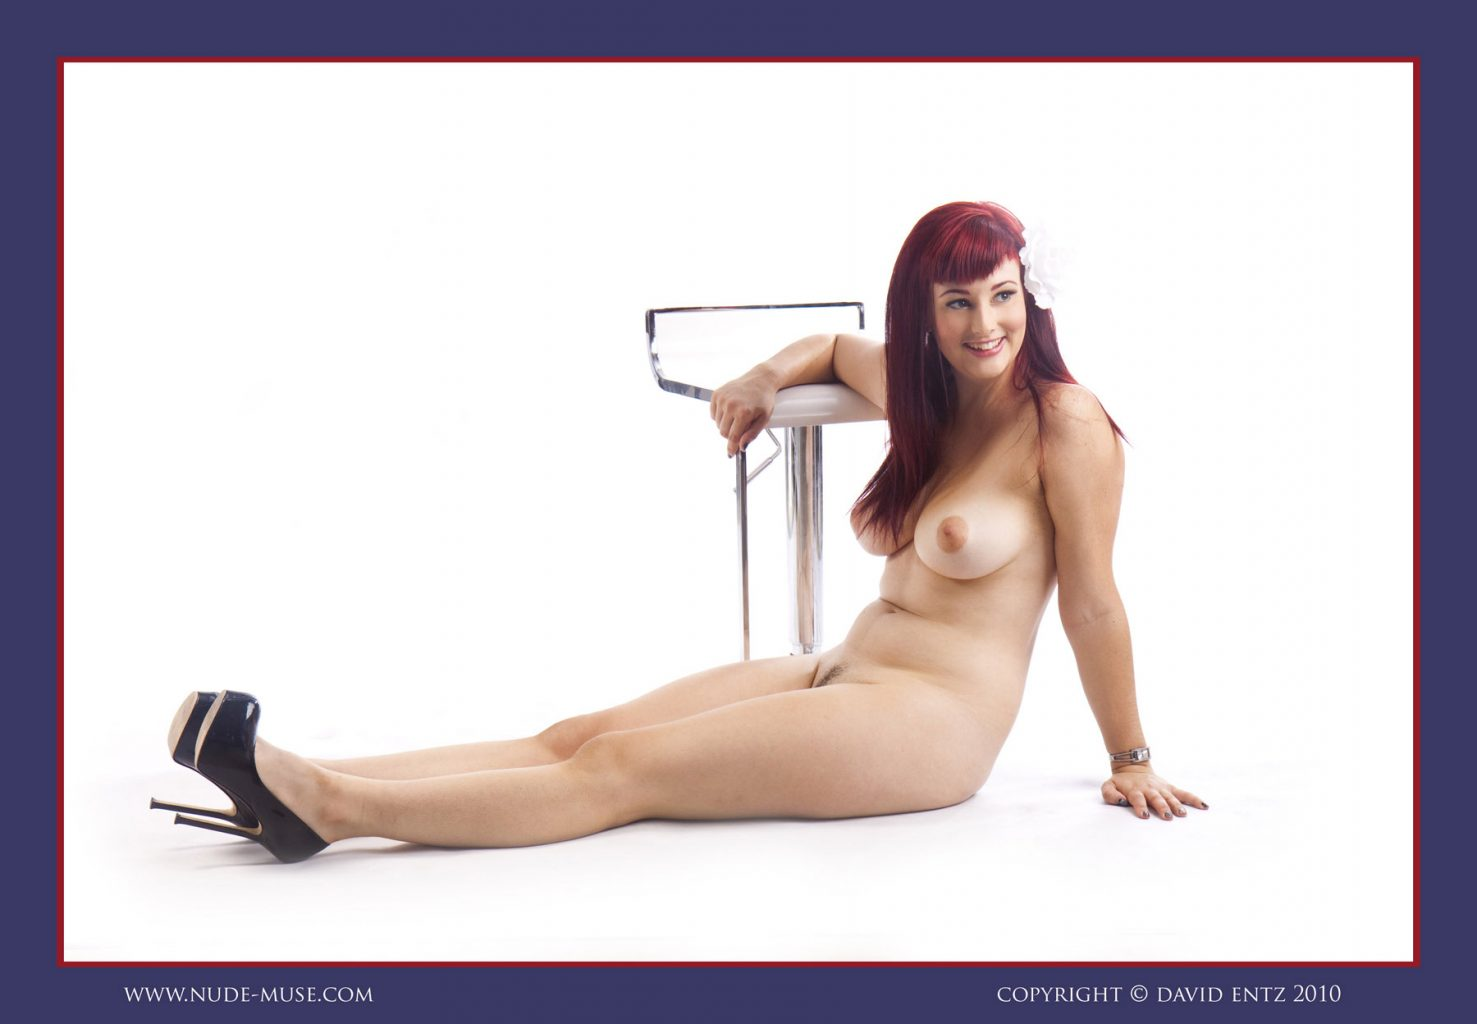 Scarlett Morgan Sailor Girl Nude Muse